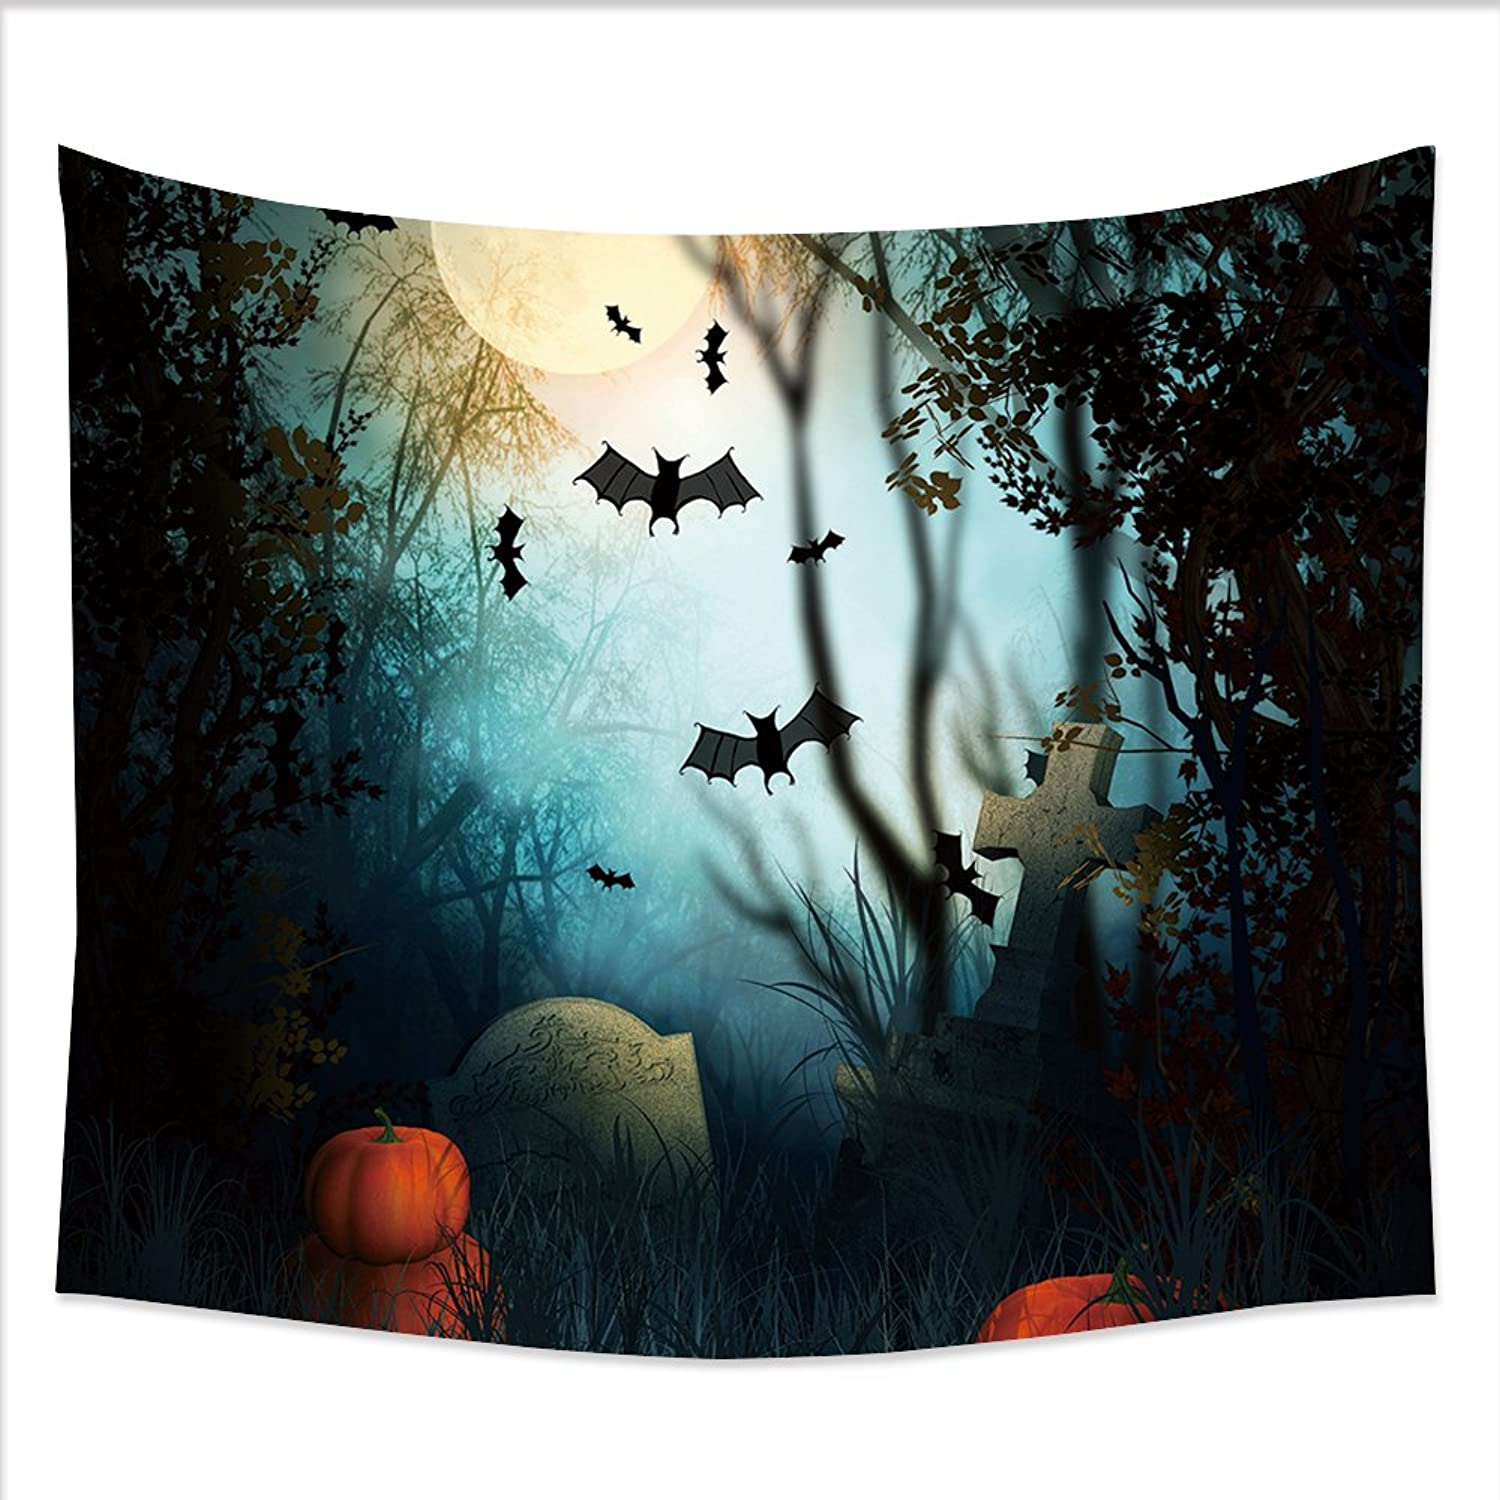 efdbef4984d7 UHOO Fleece Throw Blanket 159675710 Halloween Backdrop for Woollen ...